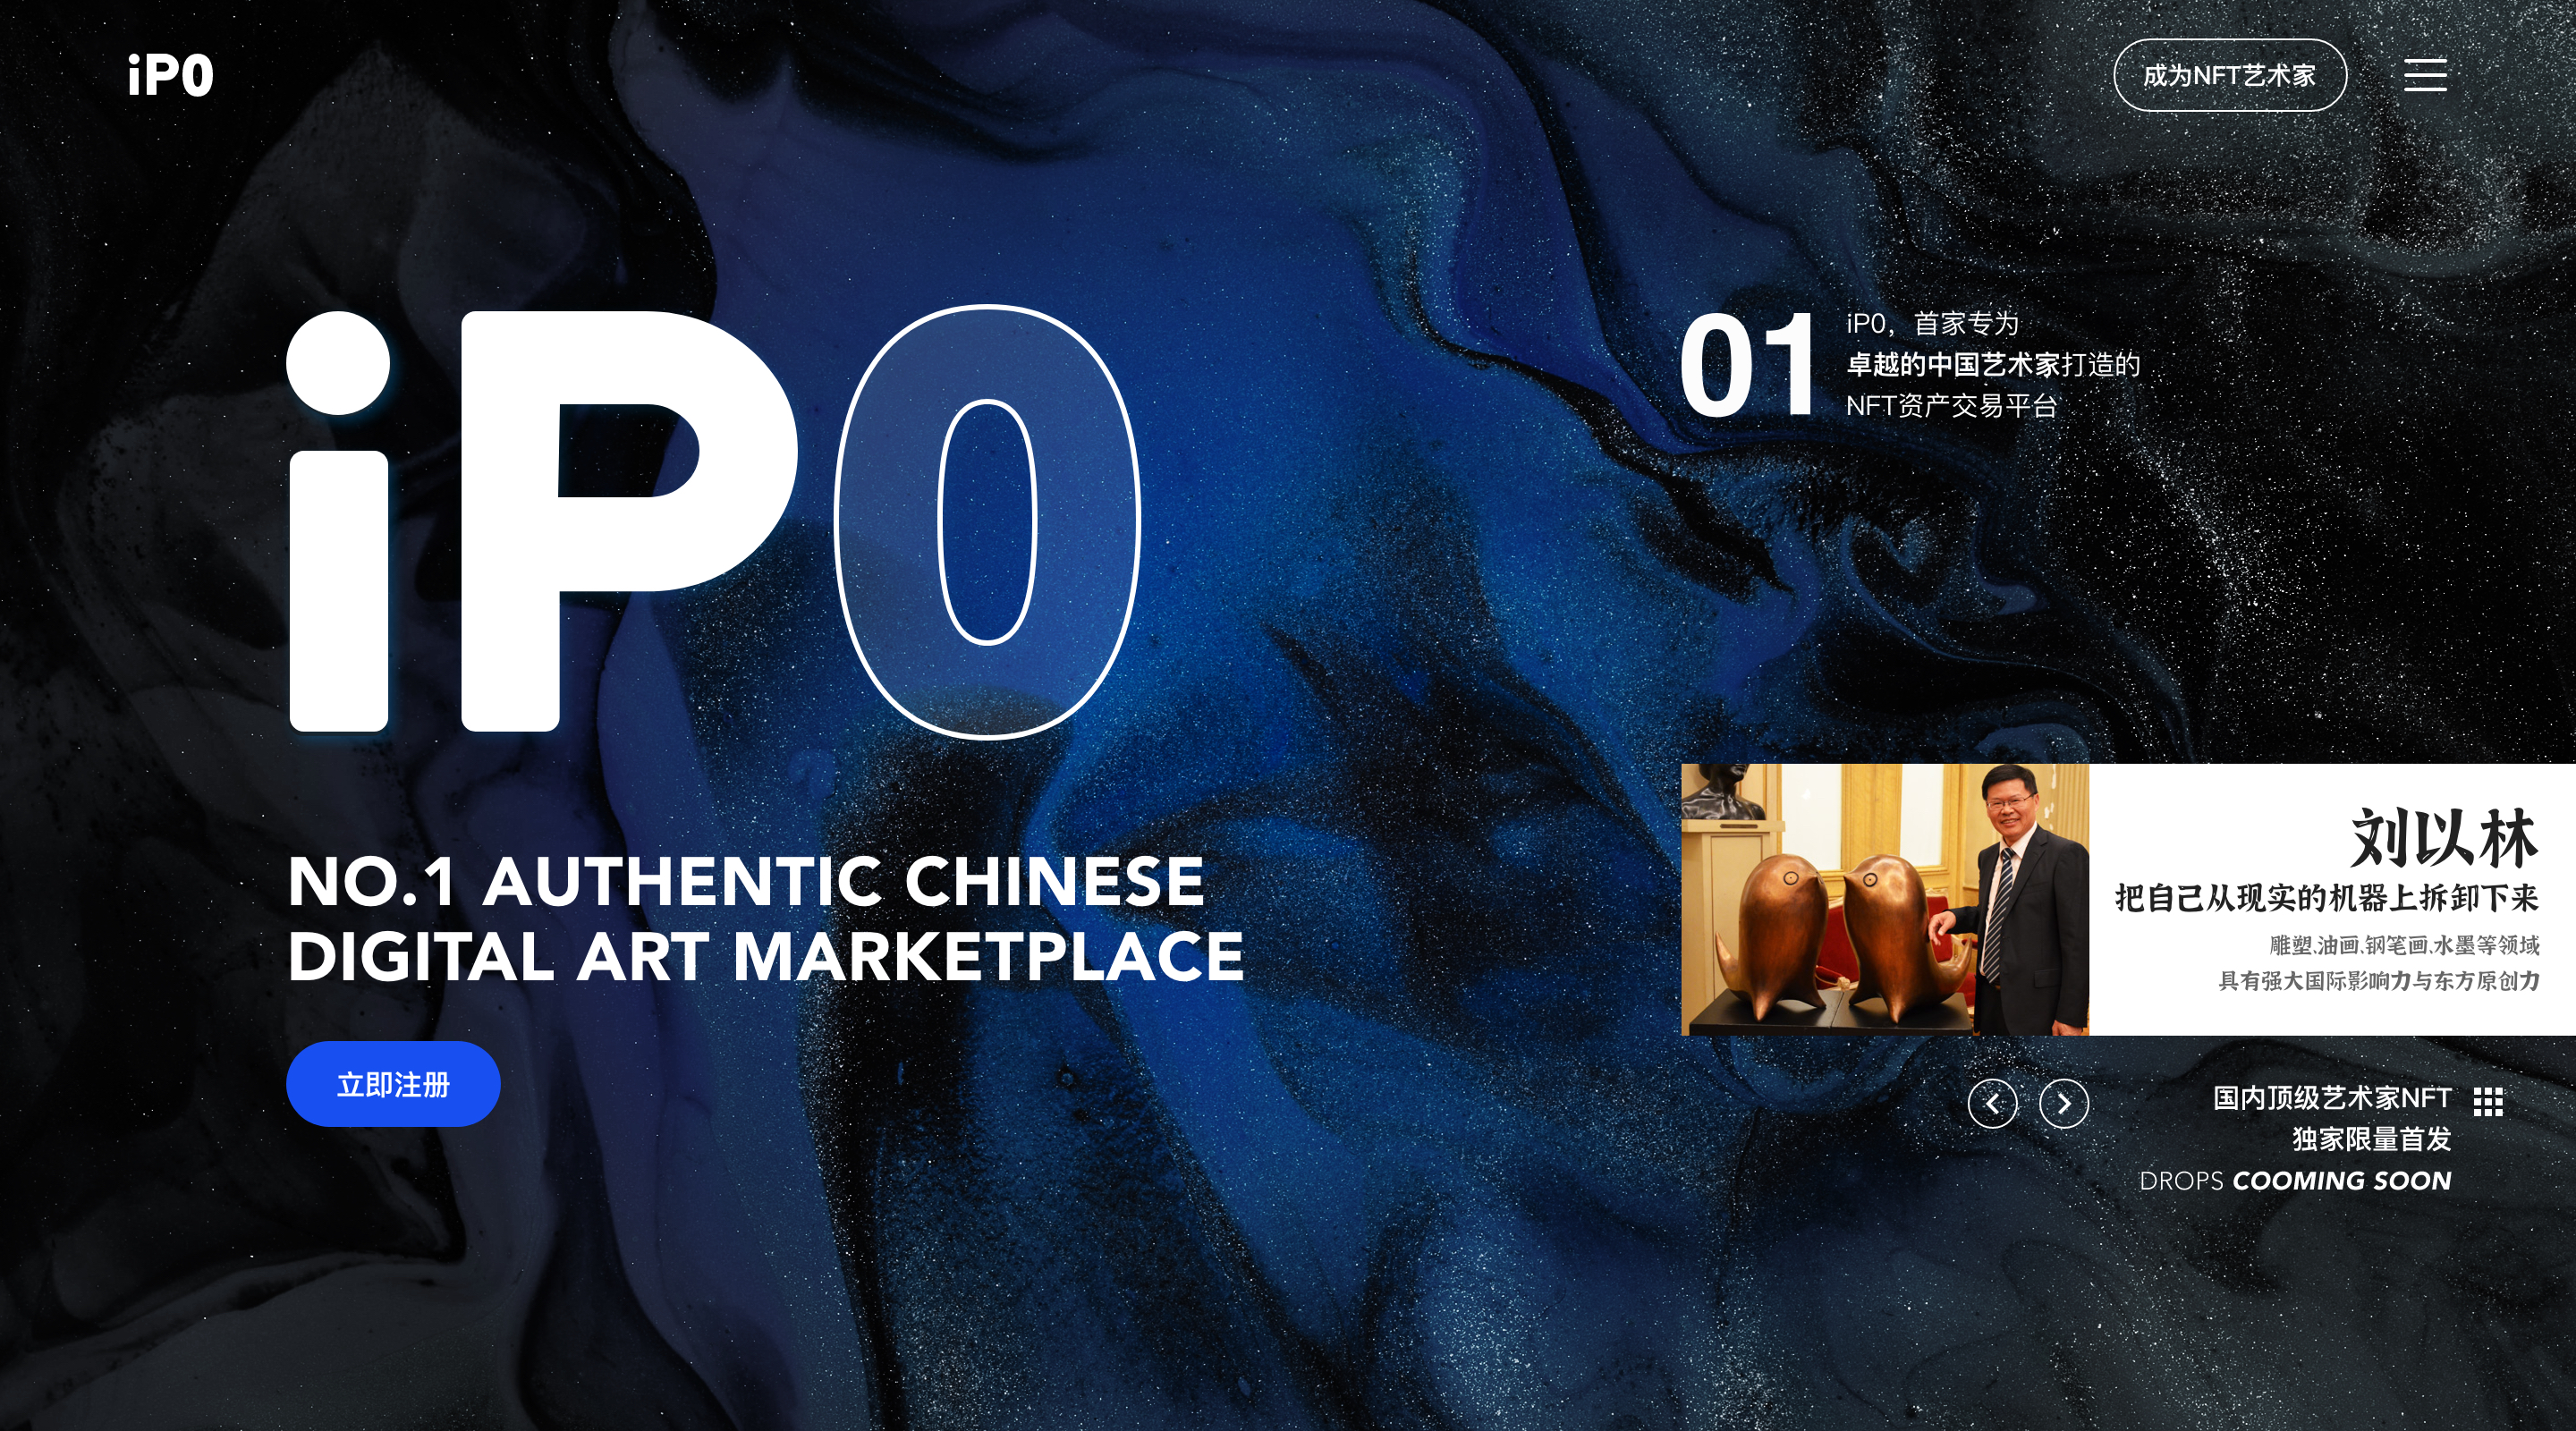 IP0.COM: First Chinese Digital Art NFT Marketplace Debuts – A Milestone in Opening Up the Chinese NFT Market